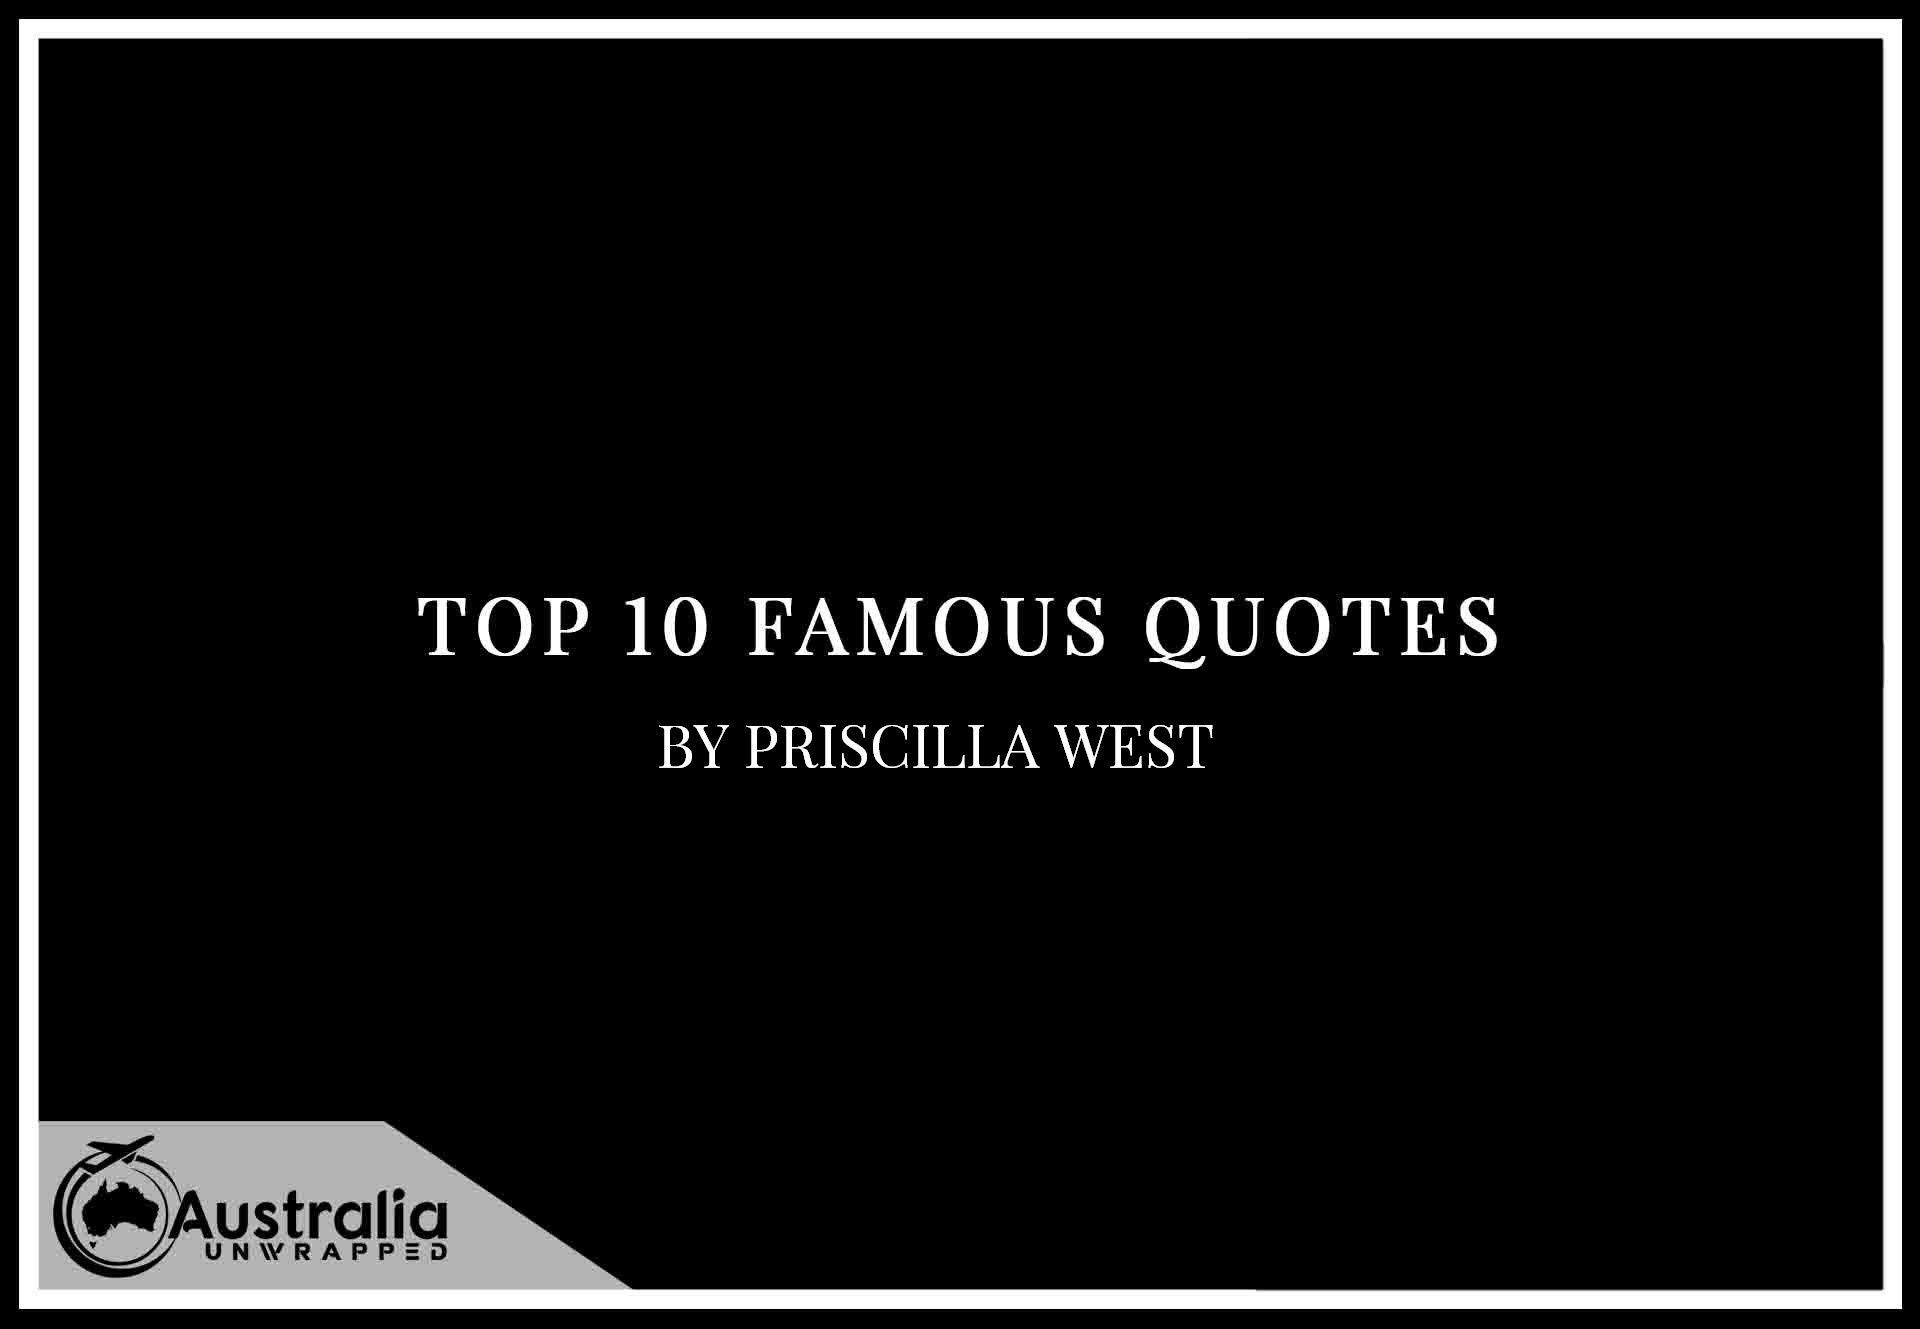 Top 10 Famous Quotes by Author Priscilla West